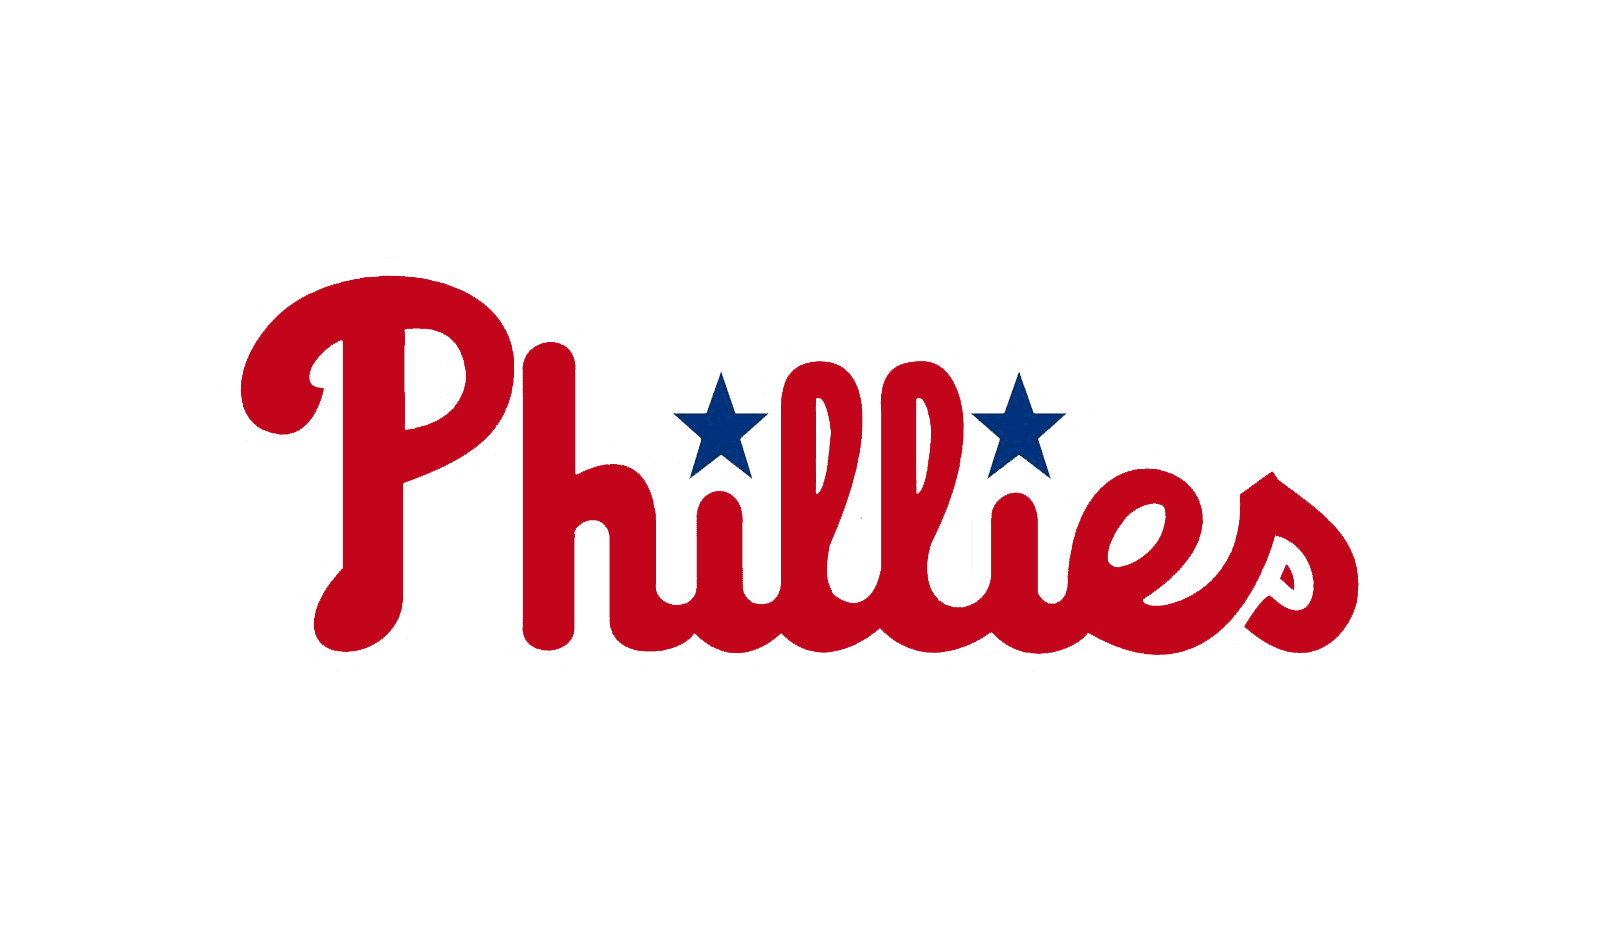 the phillies will not make the playoffs u2022 the game haus rh thegamehaus com  philadelphia phillies logo font